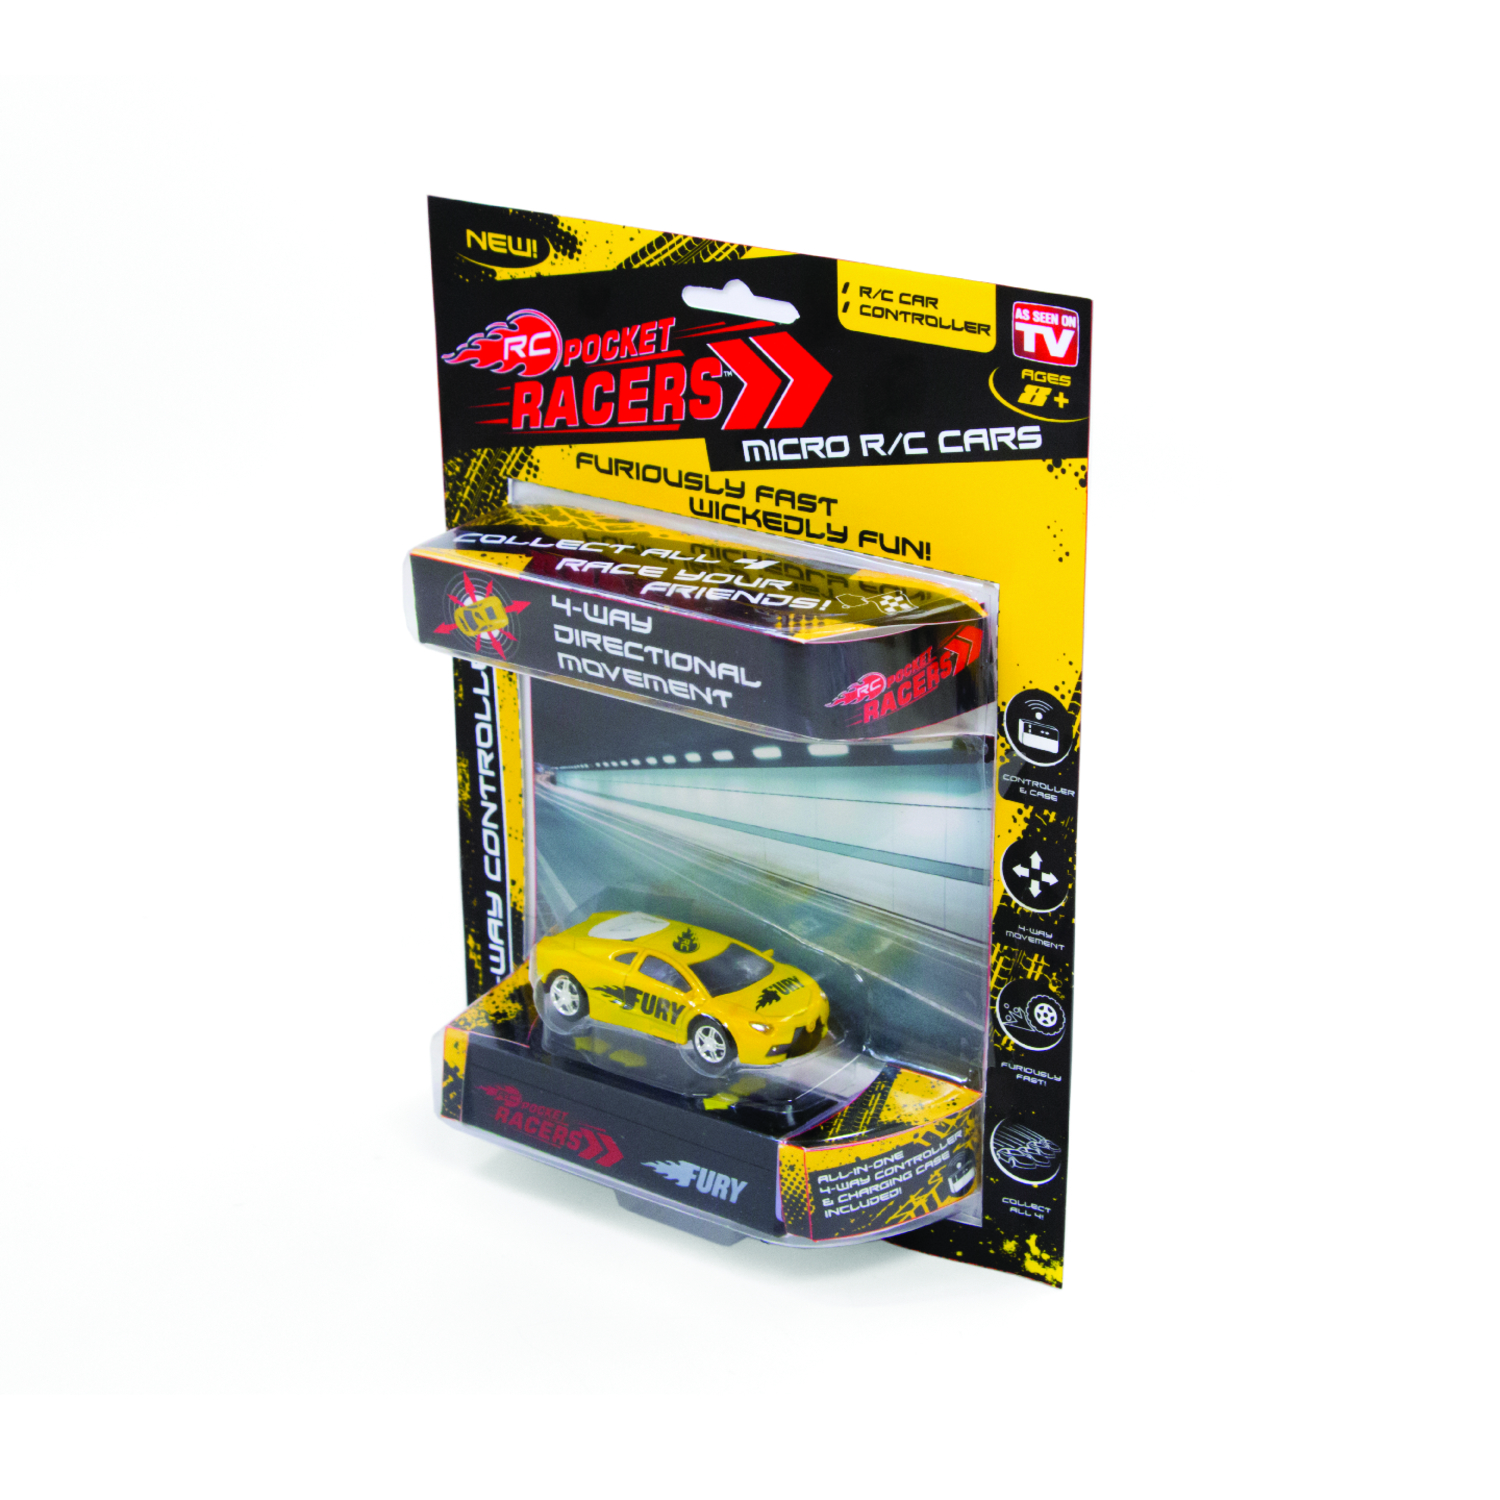 RC Pocket Racers  As Seen On TV  Radio Controlled Car  Metal/Plastic/Polyester